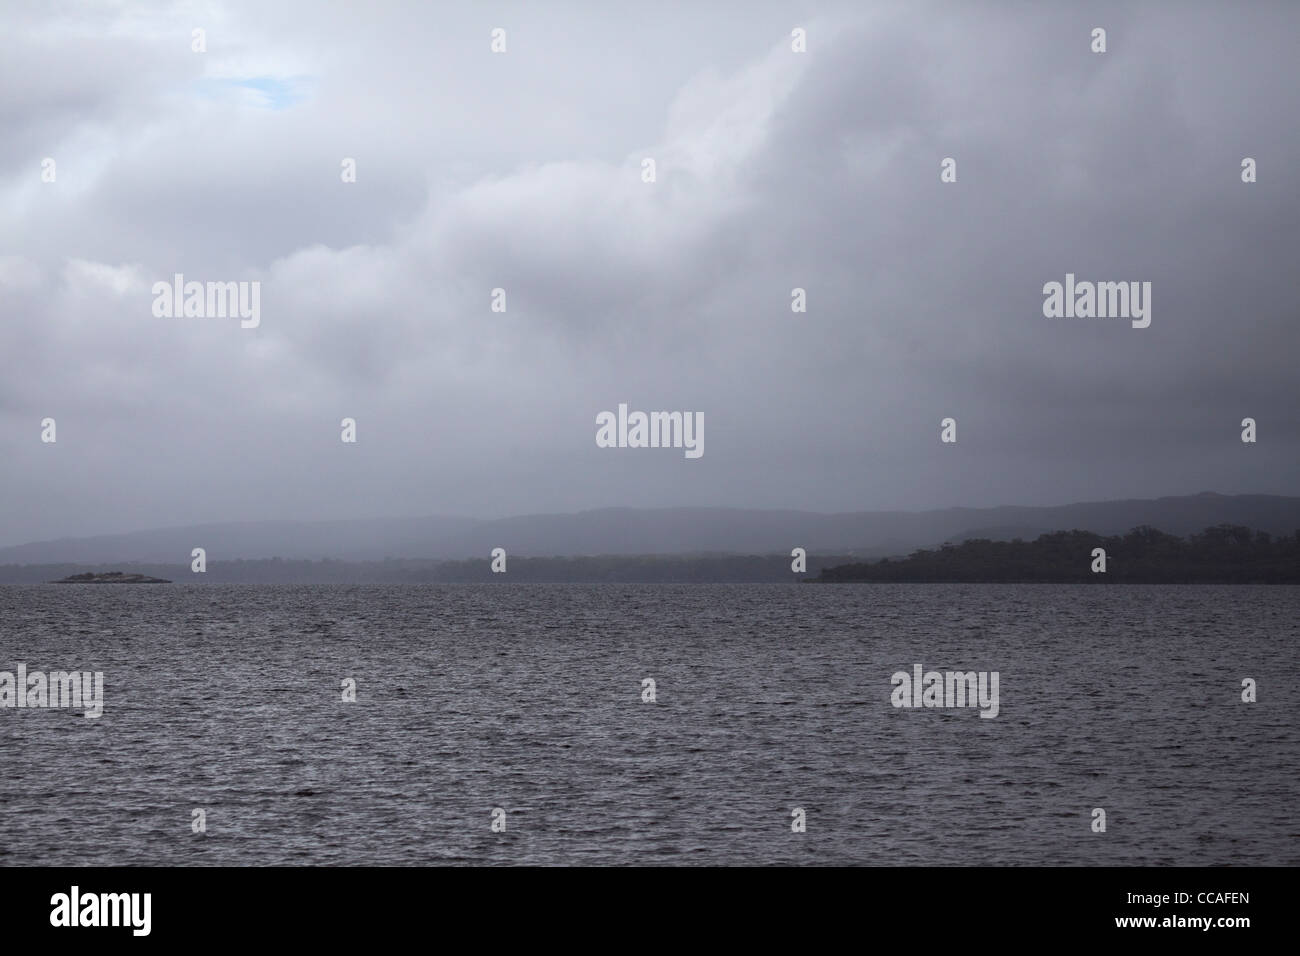 A grey and overcast day at the estuary of the Frankland River at Denmark in Western Australia, Australia. - Stock Image